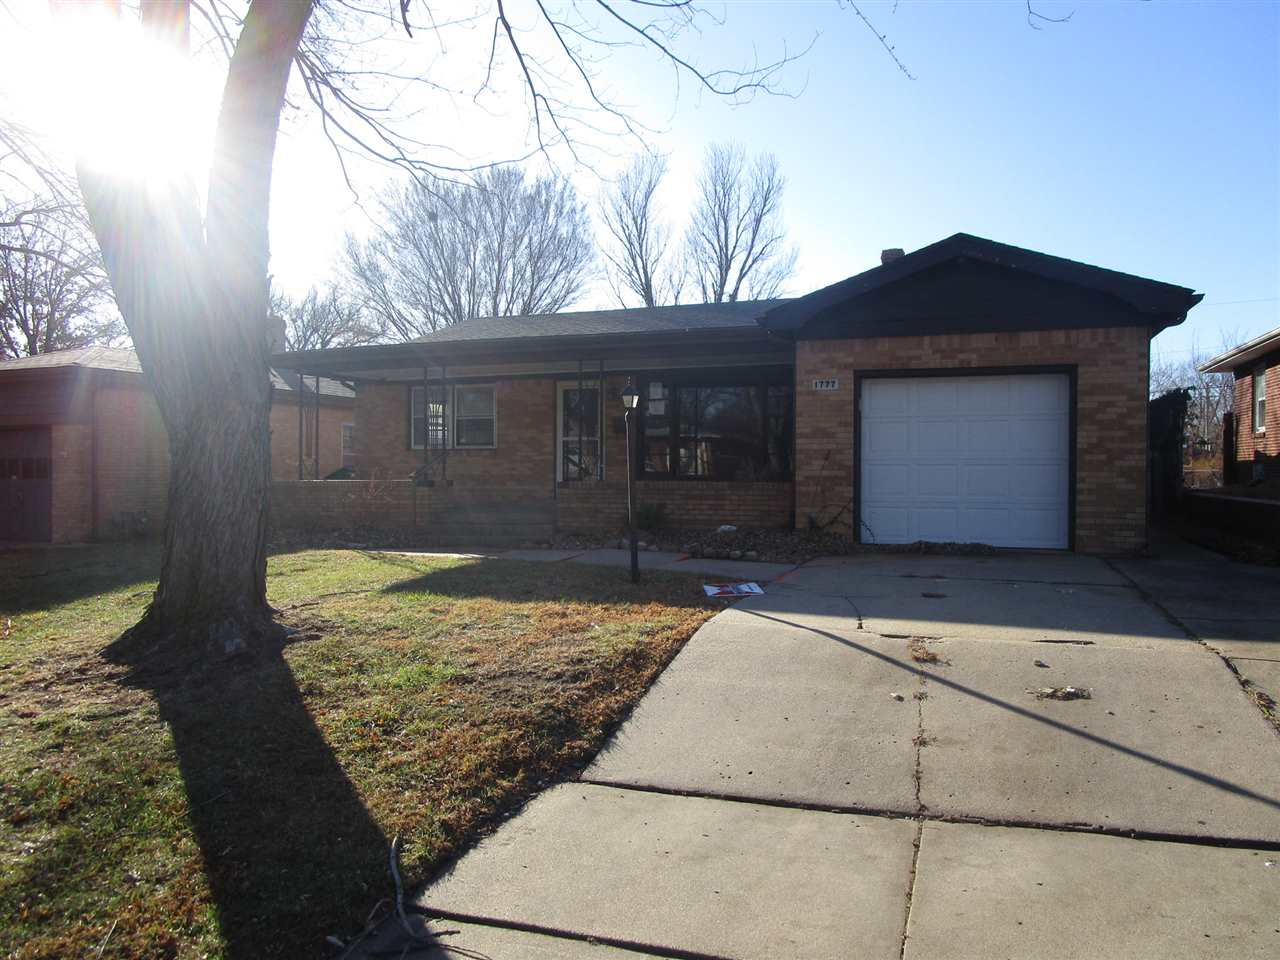 1777 S Yale St, Wichita, KS, 67218